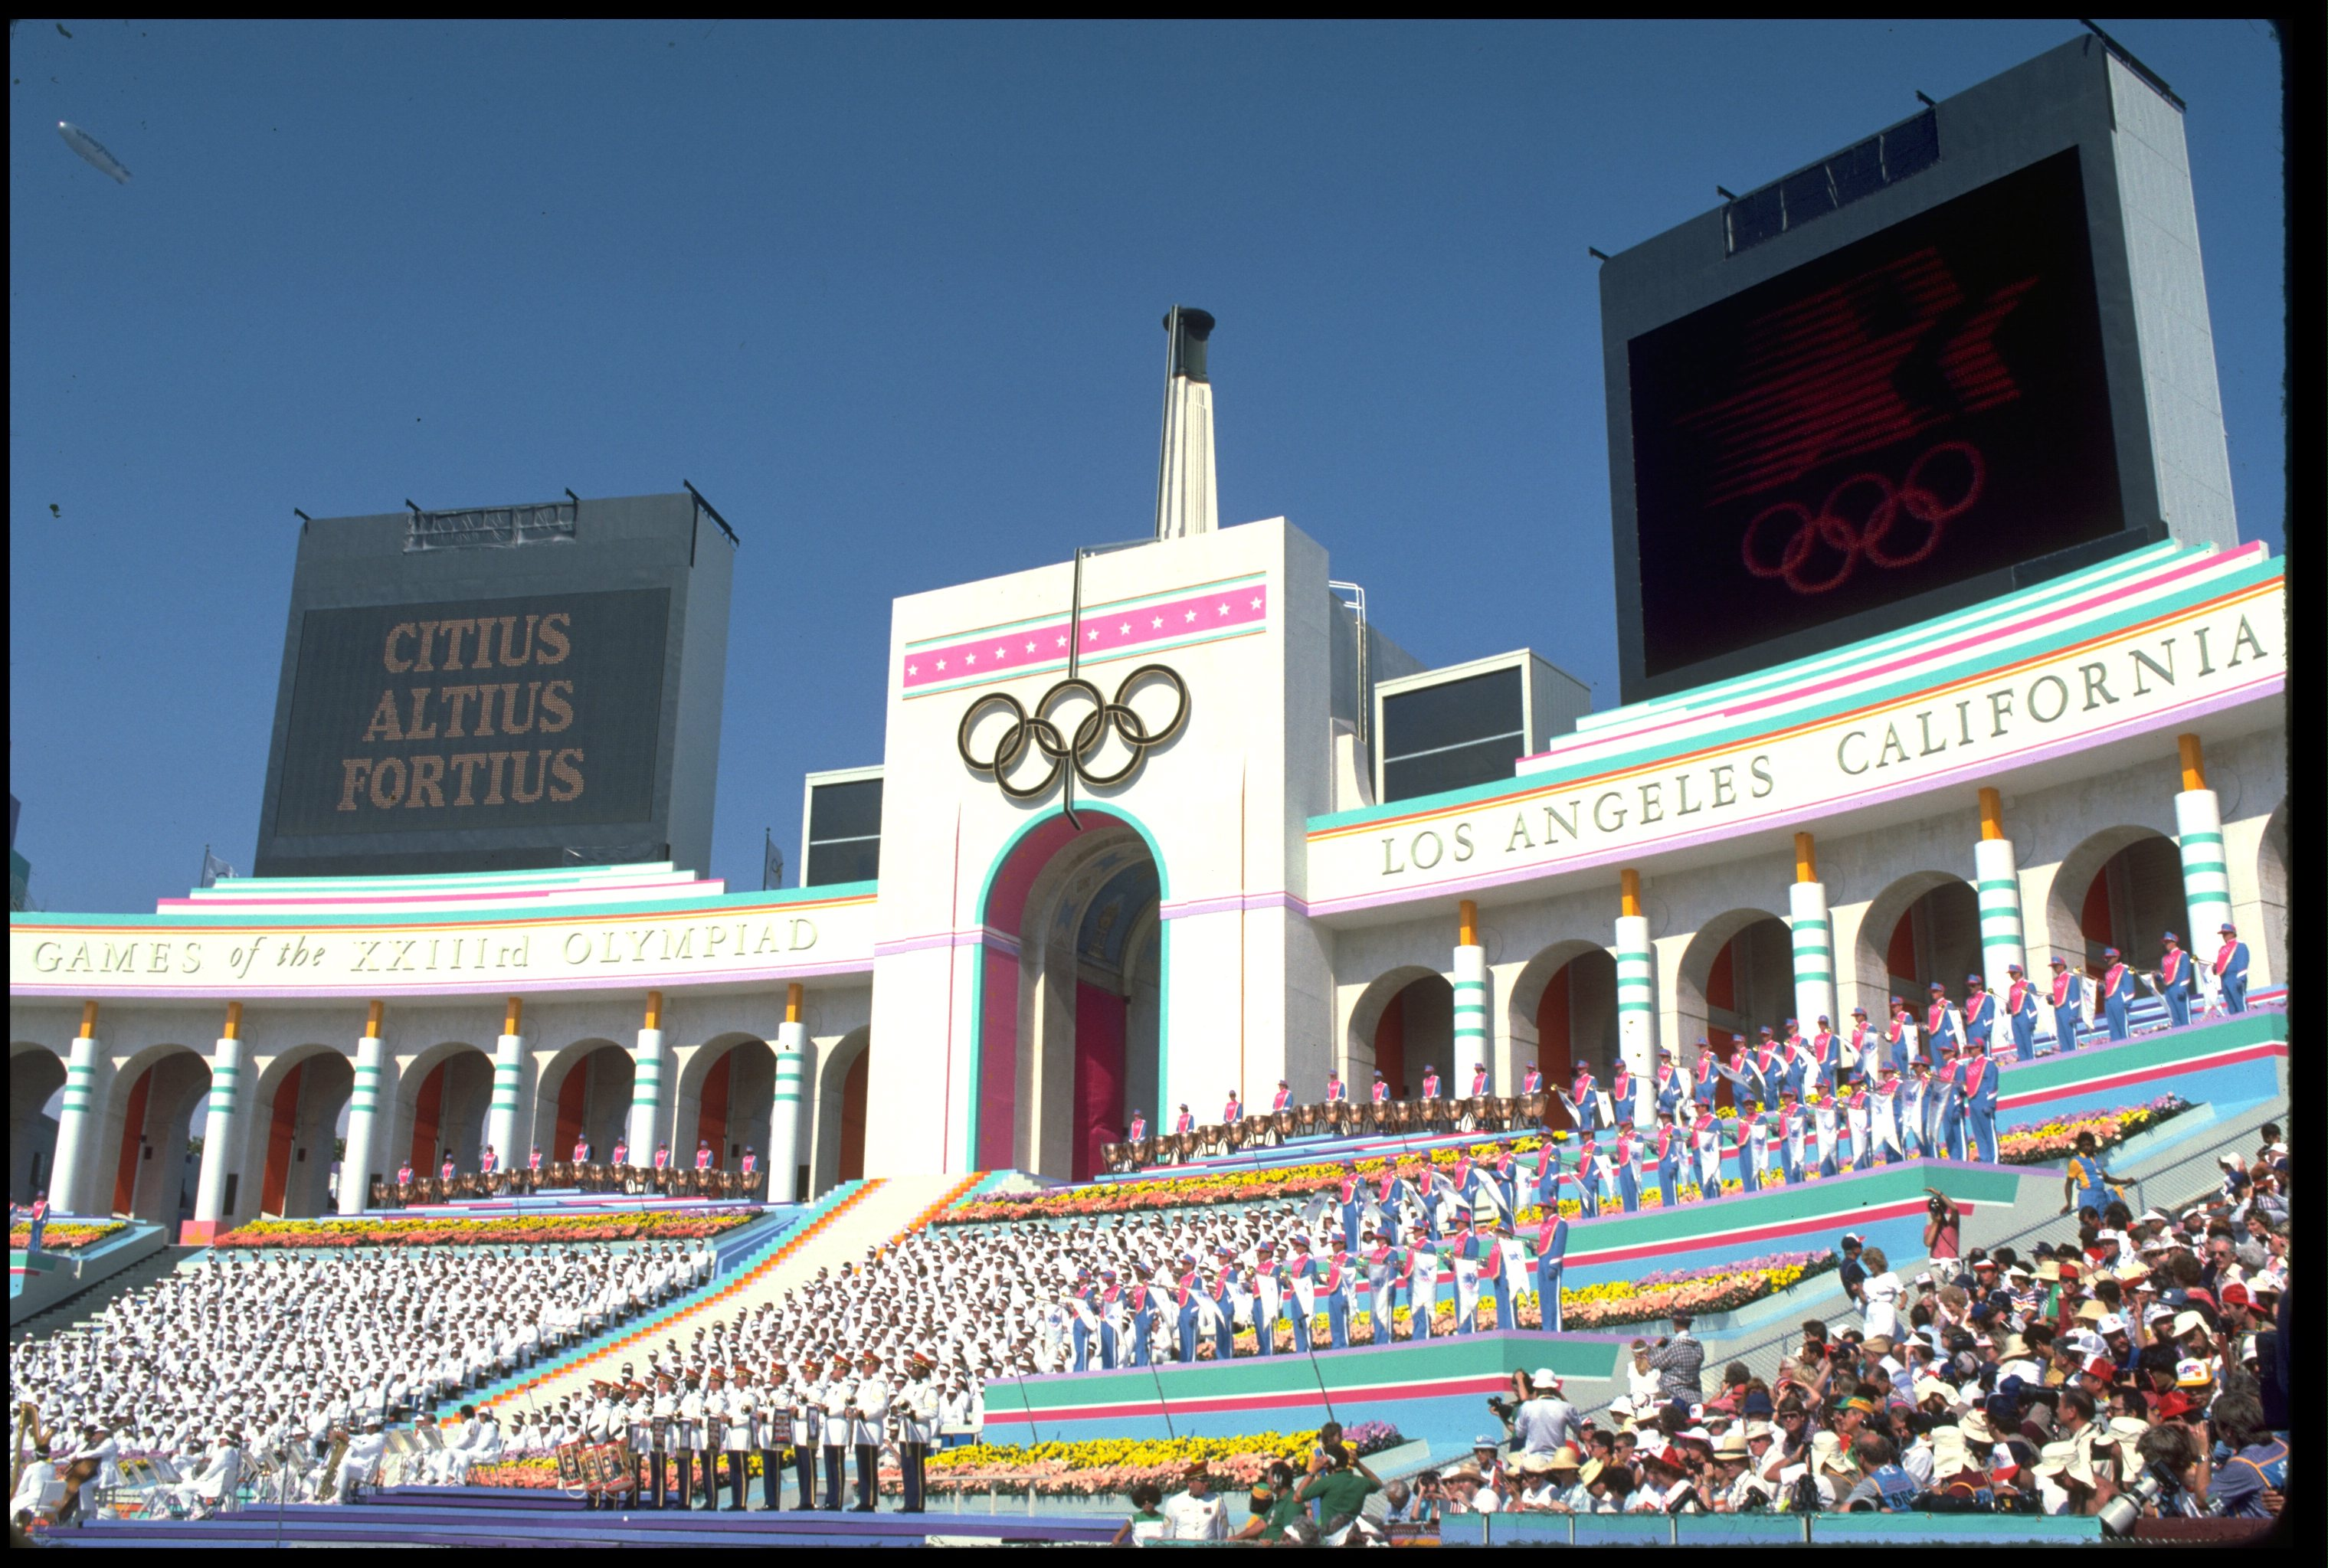 The opening ceremony of the 1984 Summer Olympics at the Coliseum in Los Angeles, Calif.